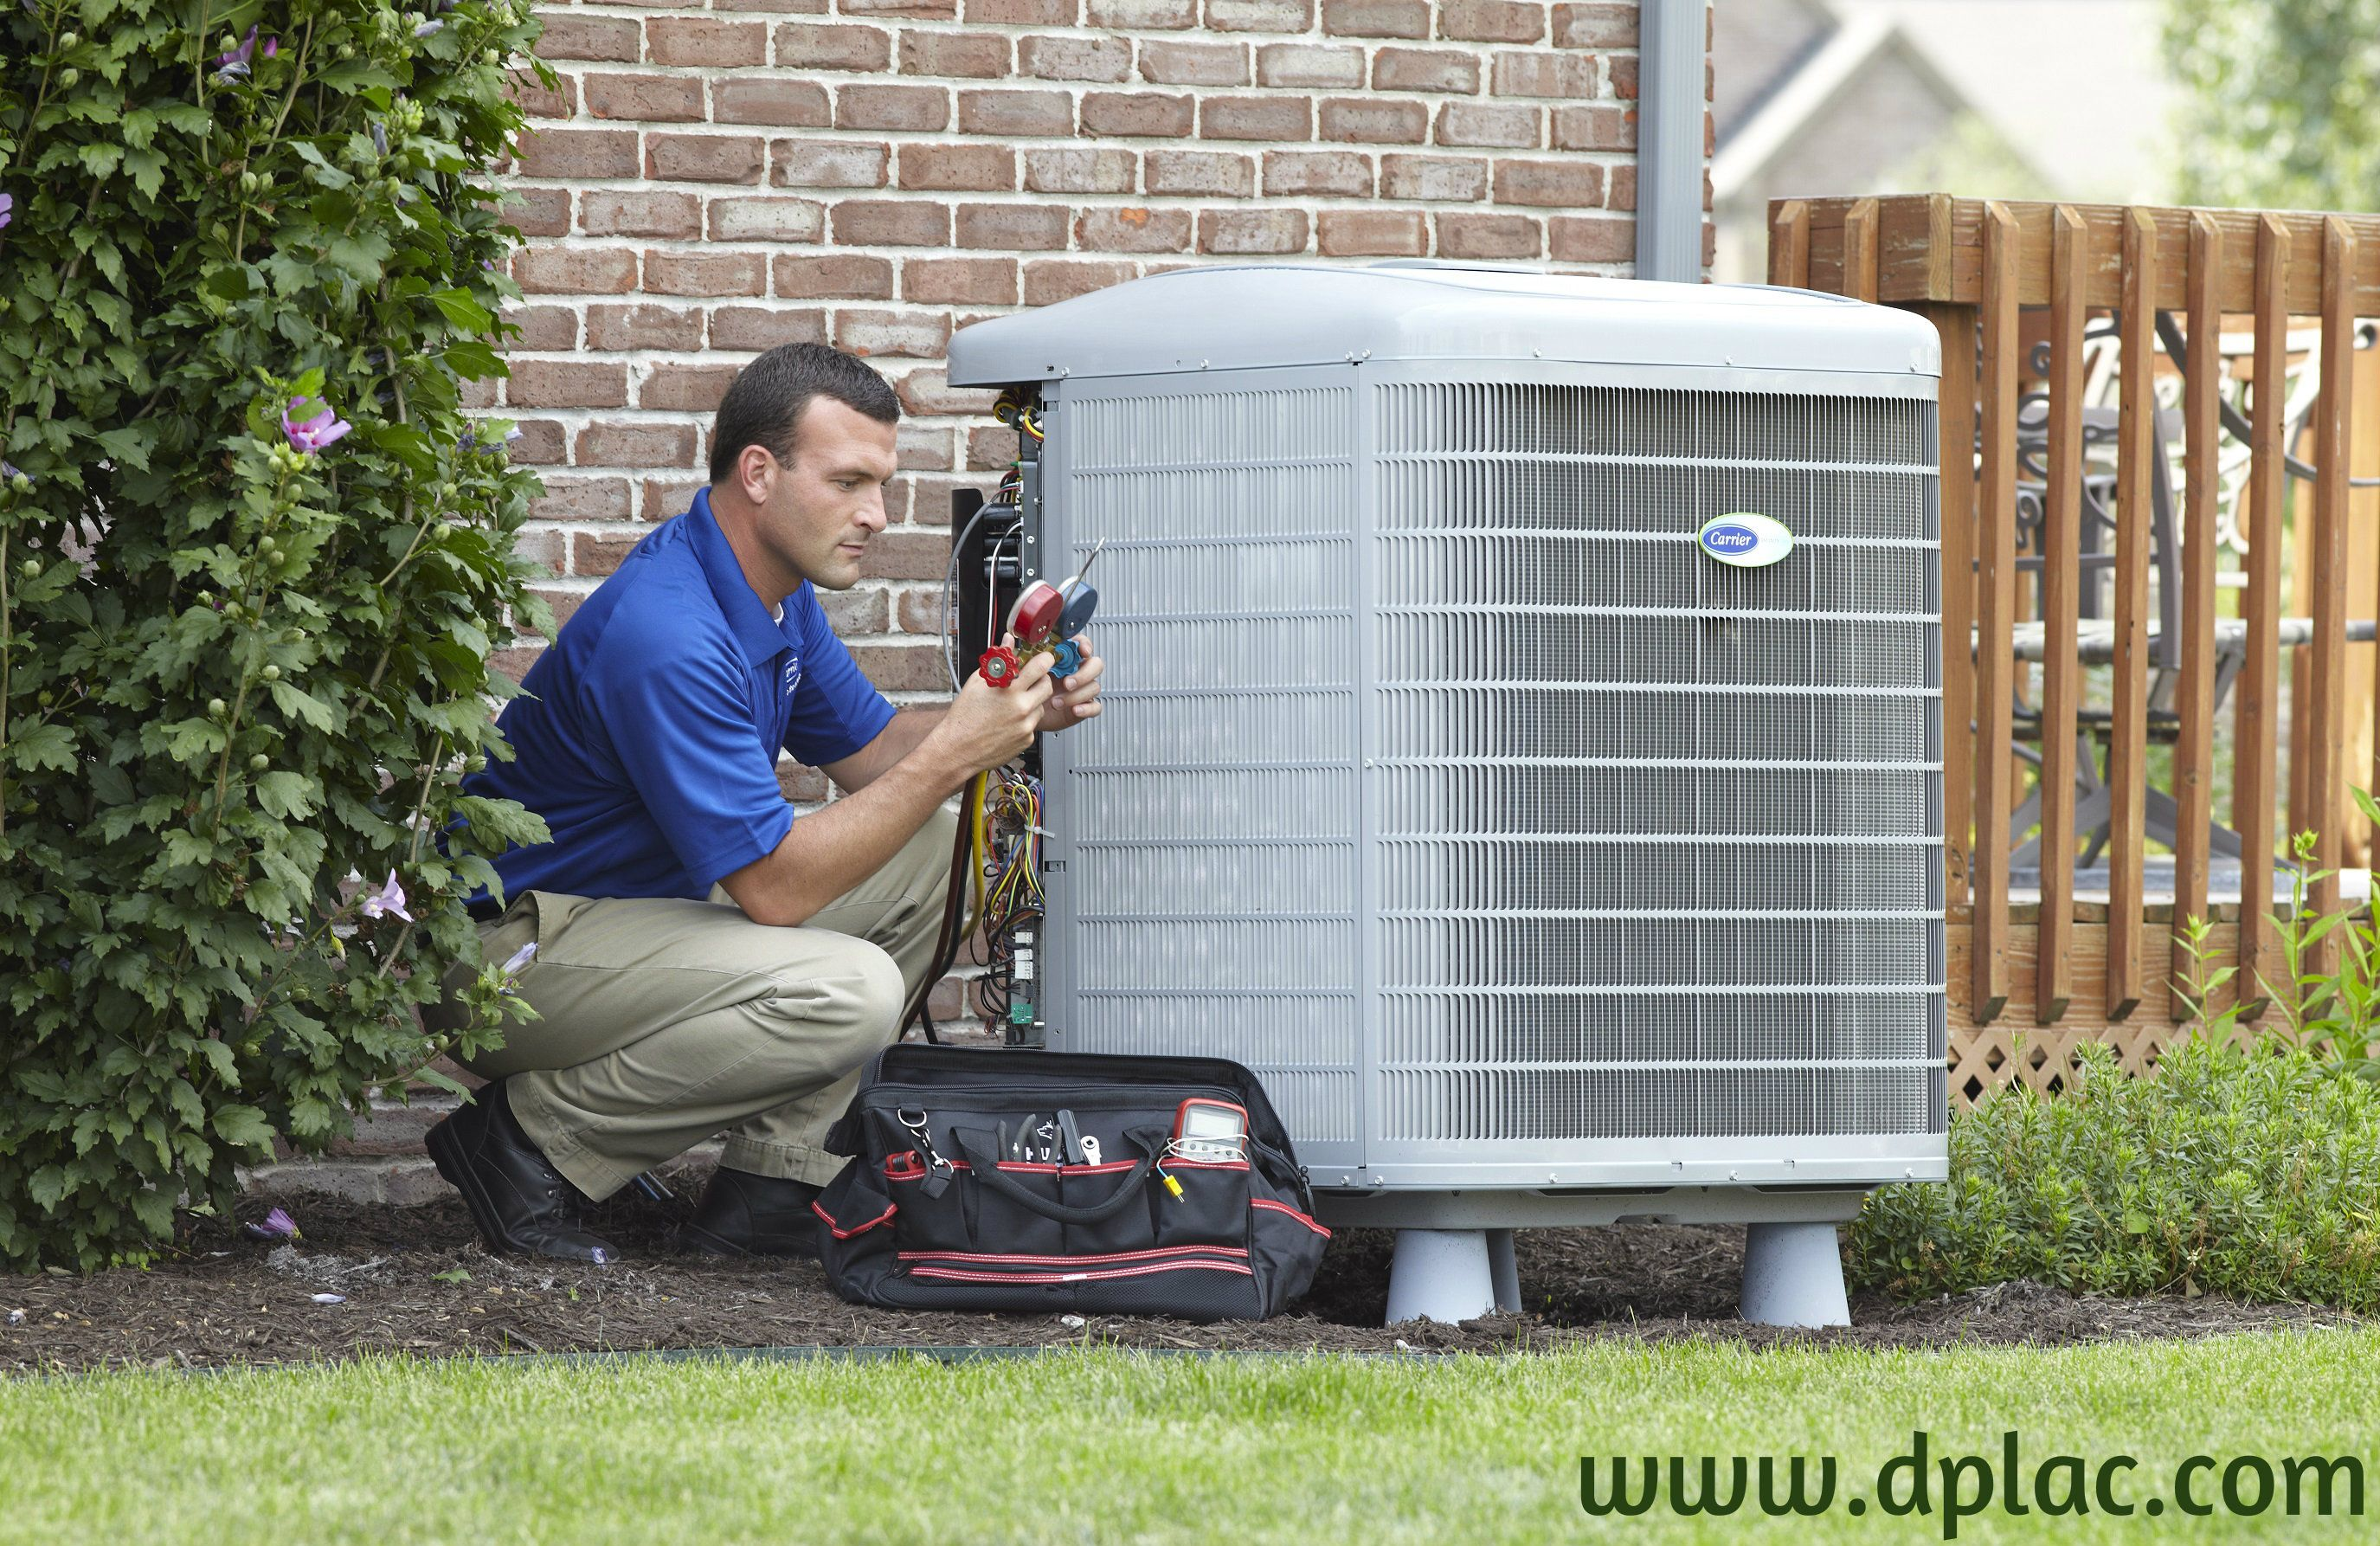 If you needed Air Conditioning Repair Service for your